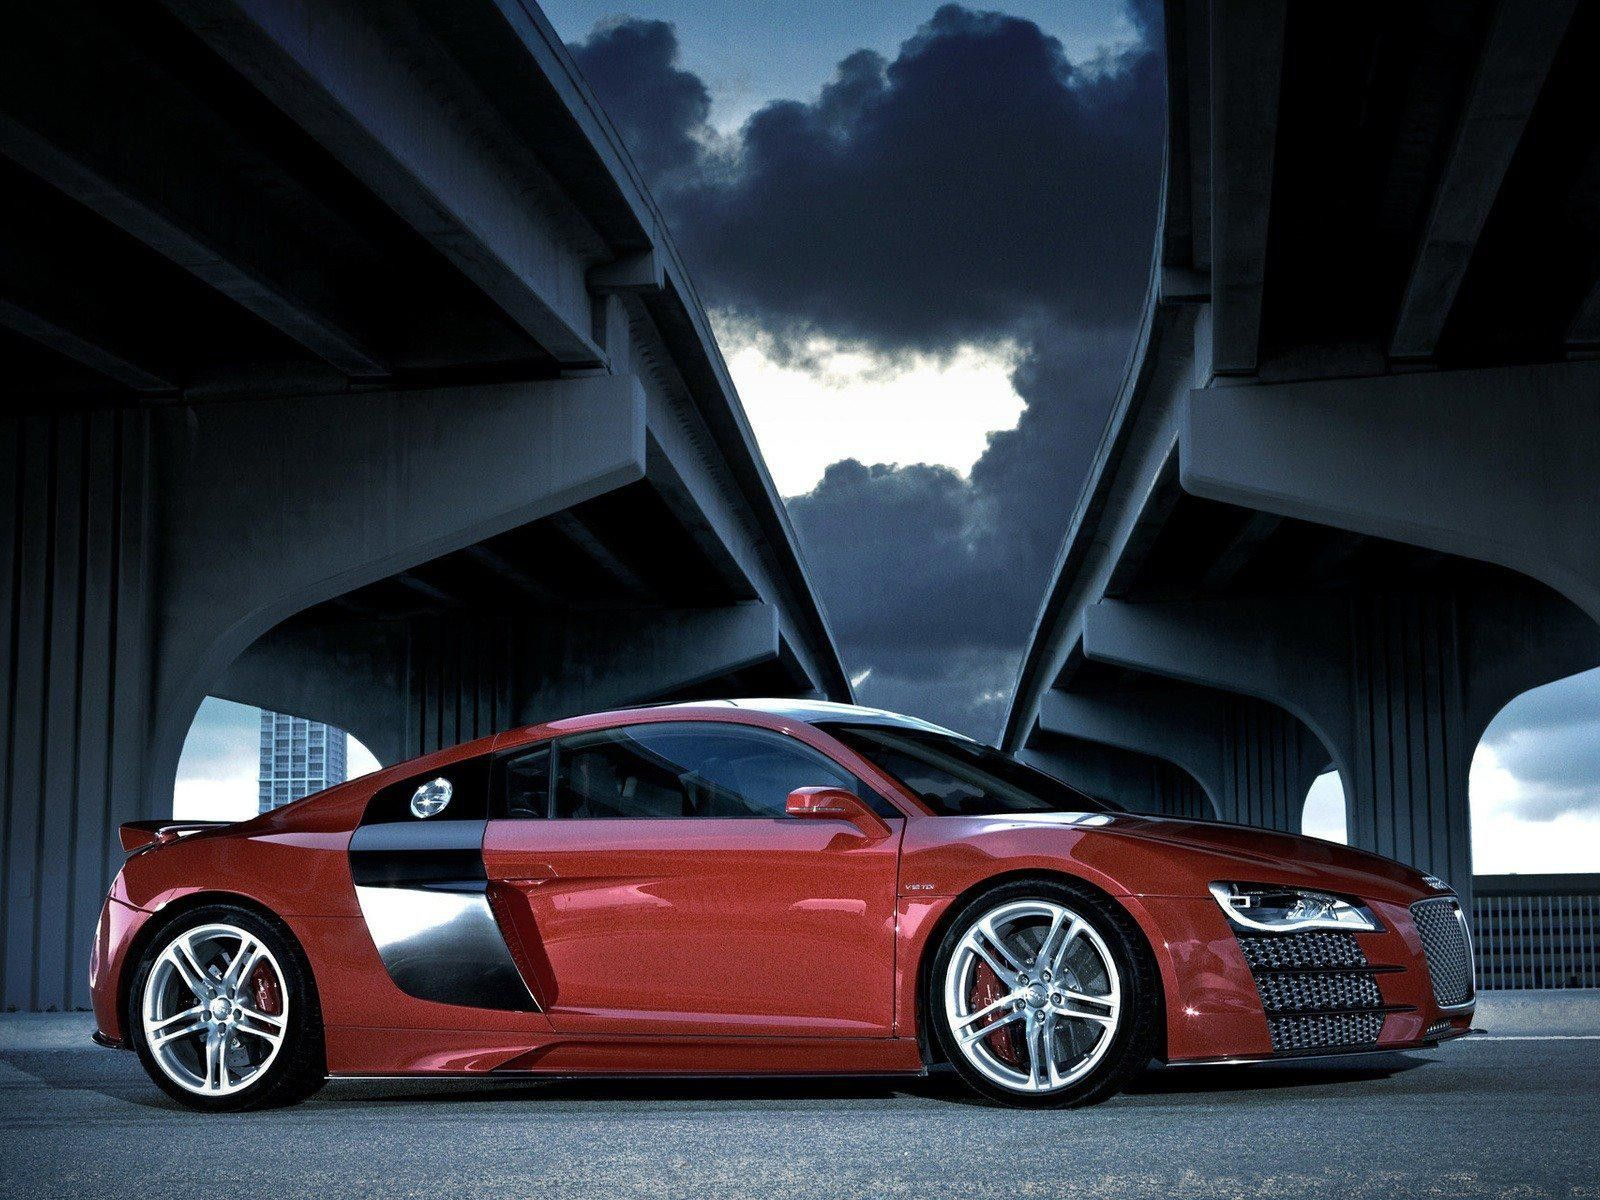 The new 2015 #Audi R8 isn't far away but this Audi R8 is also #luxurious  For more detail visit our website:http://www.audienginesandgearboxes.co.uk/engines/